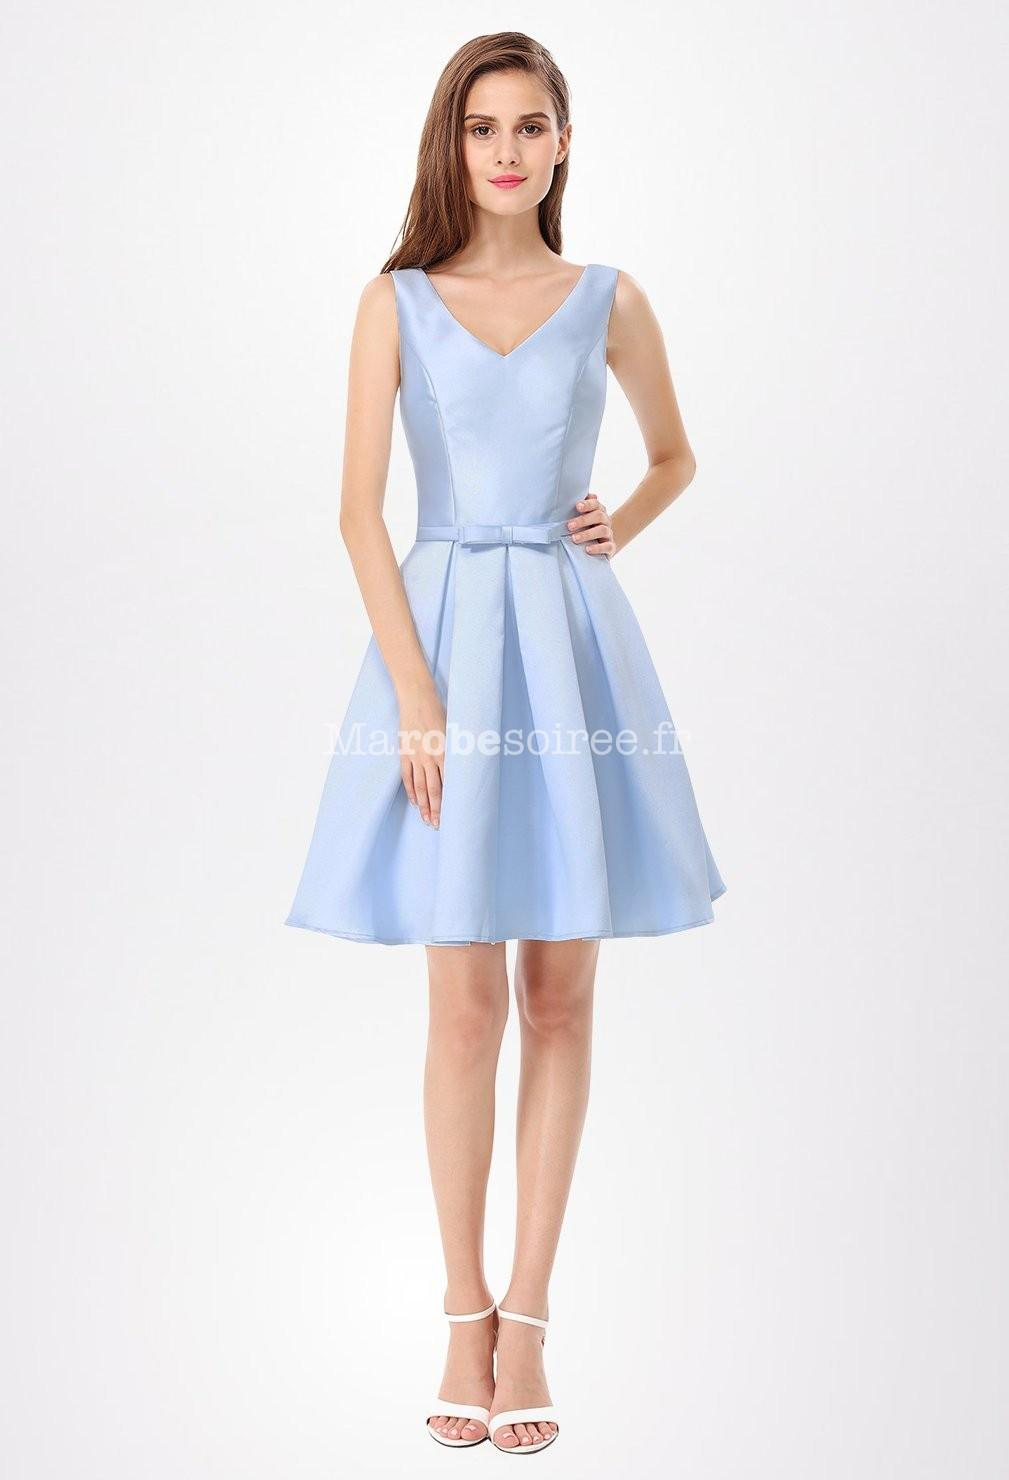 Robe cocktail bleu ciel